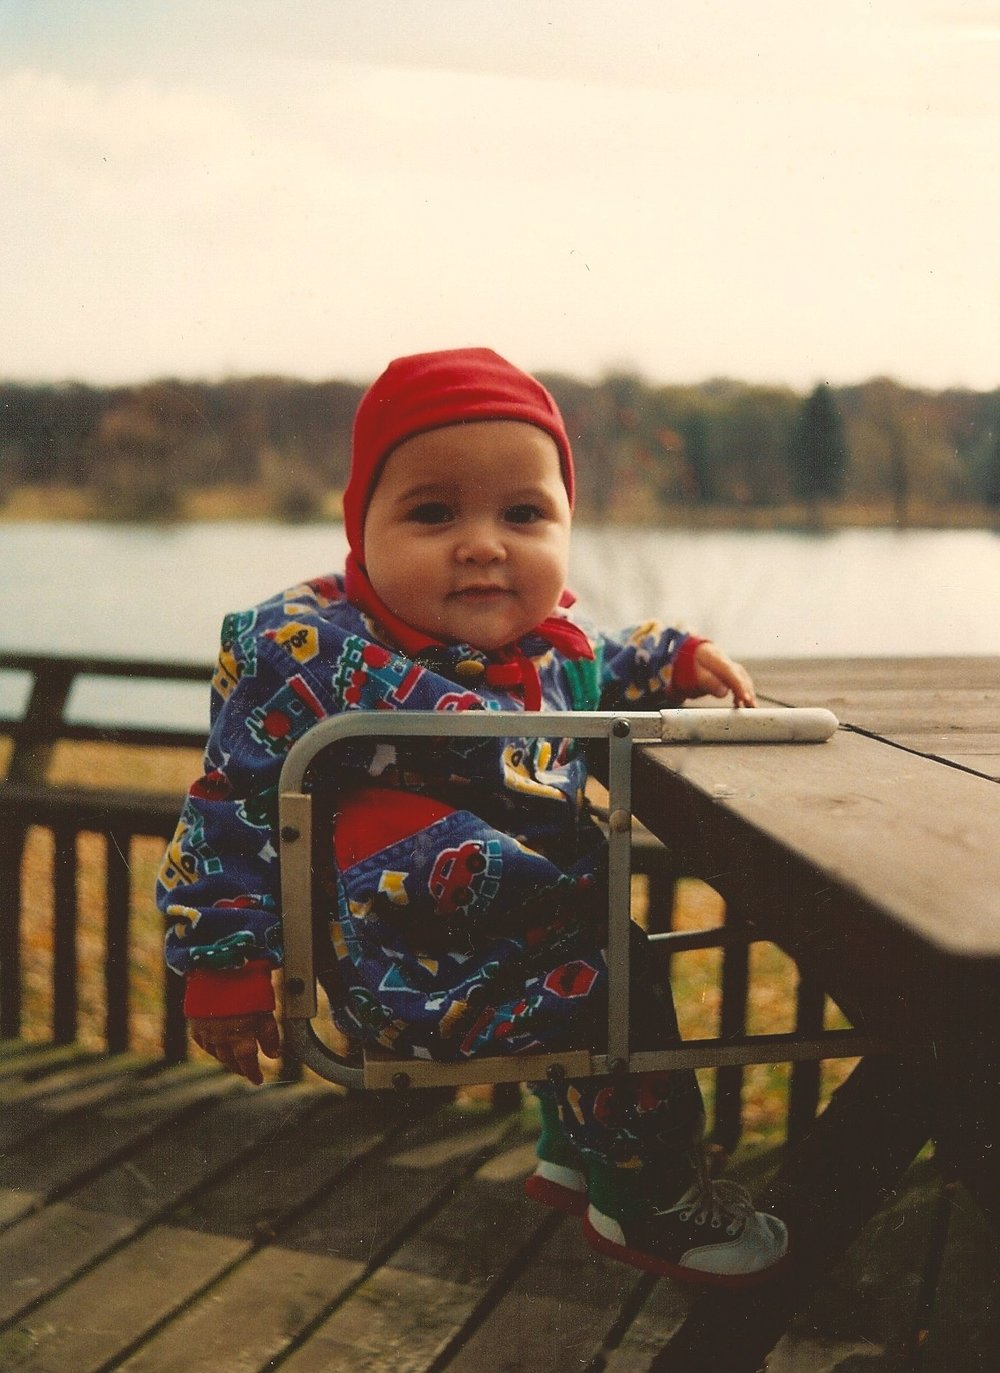 & Max . also size Medium . but at 6m He took on a Medium early because of his impressive wide cheeks & head. (sigh) in a red organic earhart pilot here on the windy Fox River.